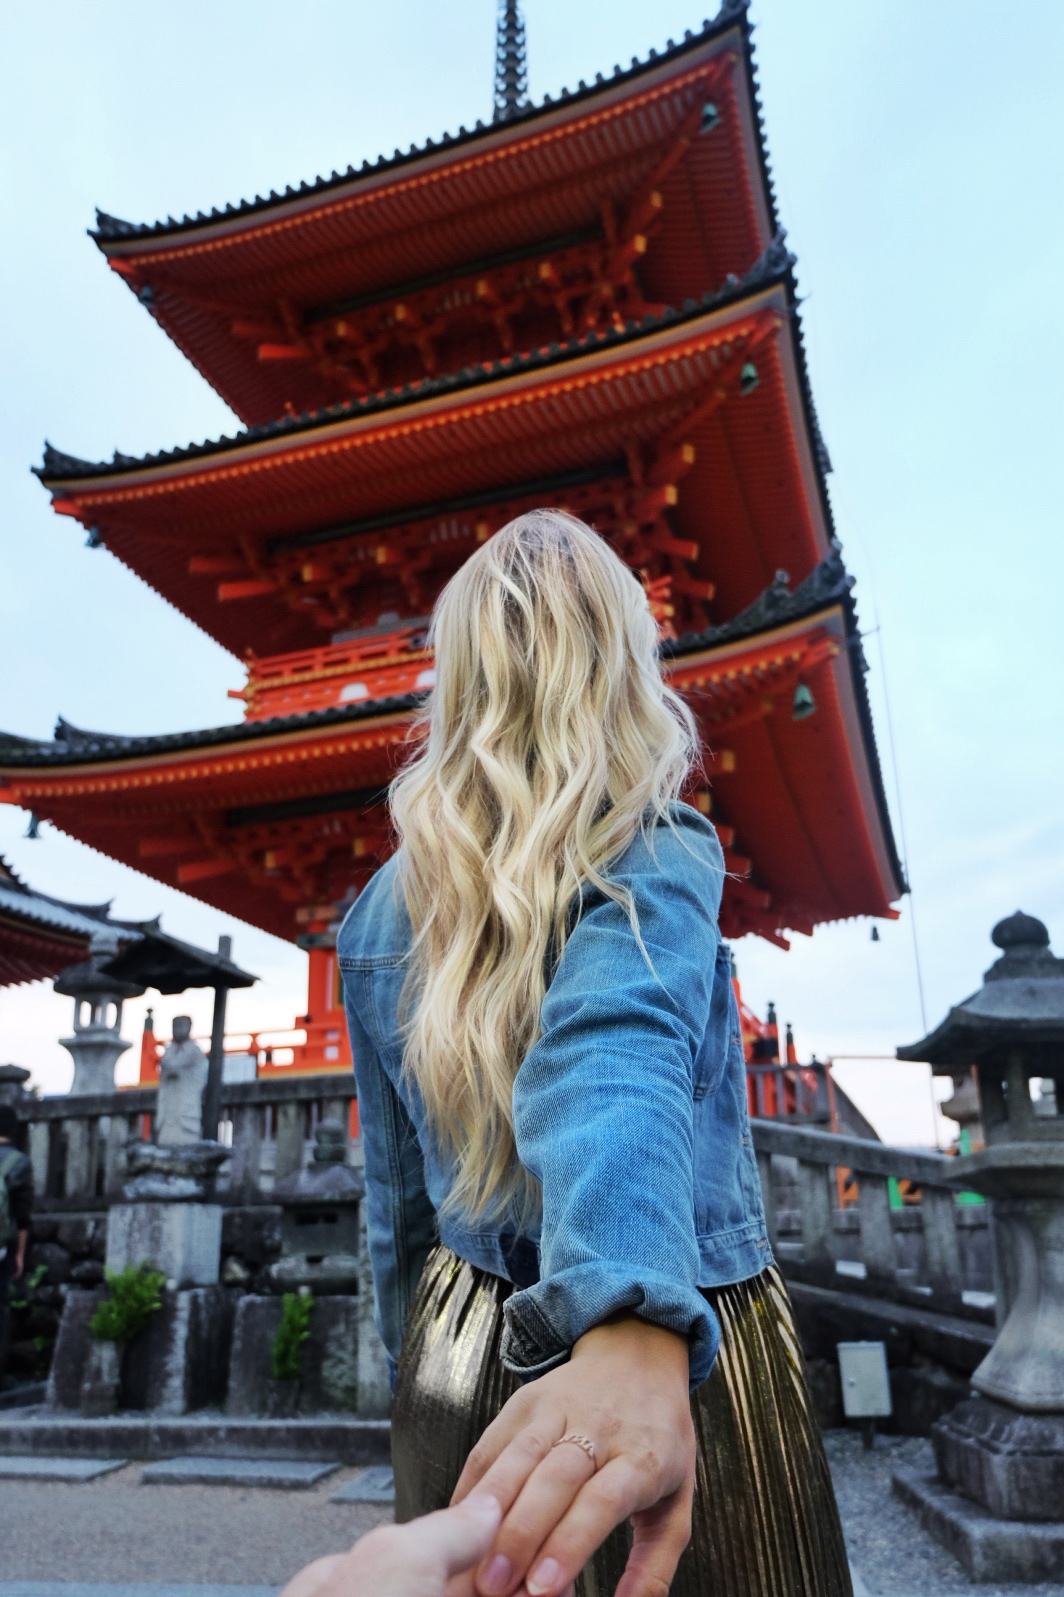 Exploring temples in Kyoto